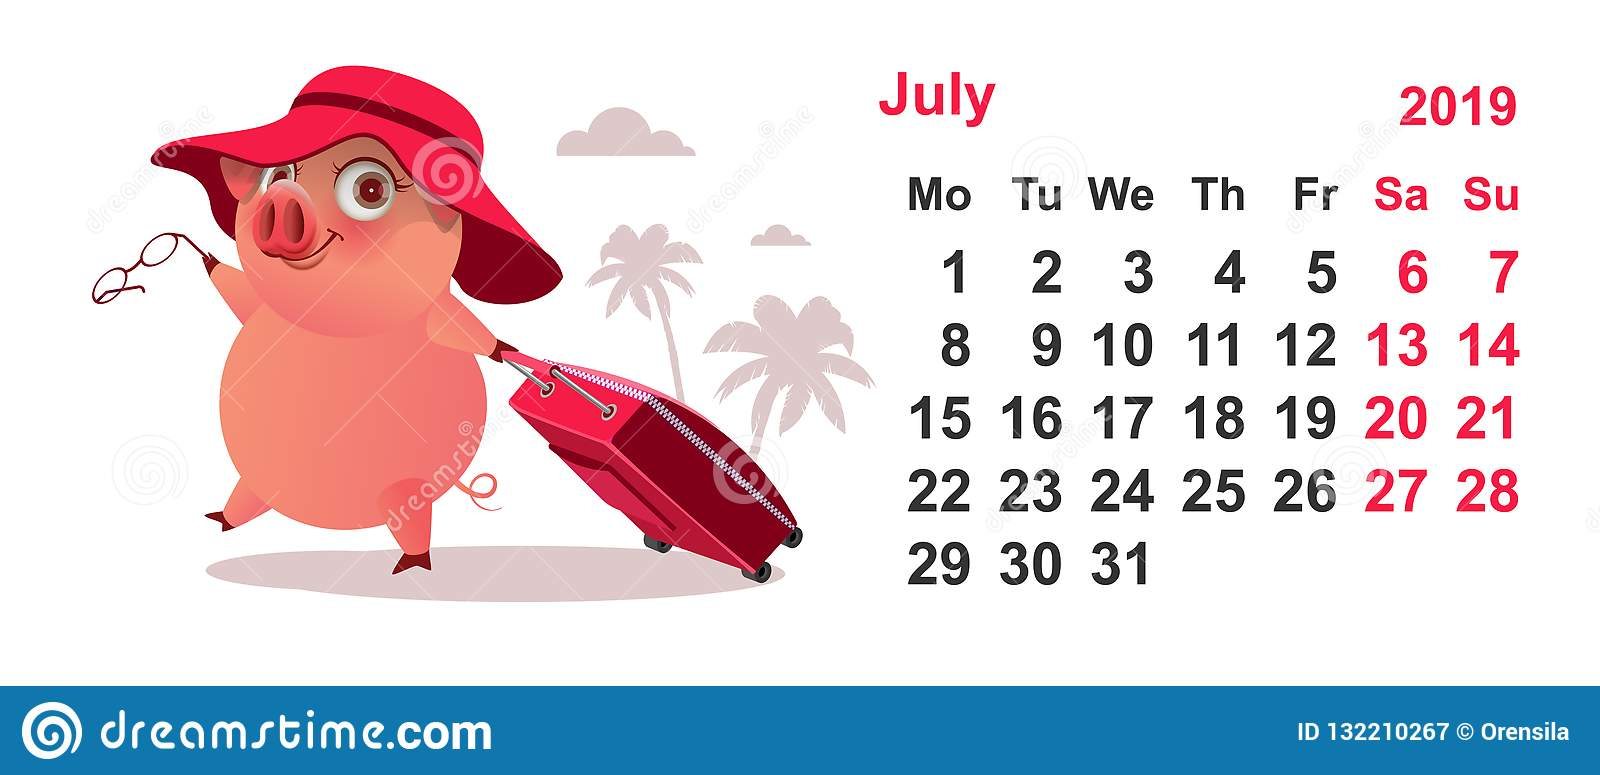 Calendario Julio 2019 Vector.Calendar July 2019 Pig Gathered On Vacation With Suitcase